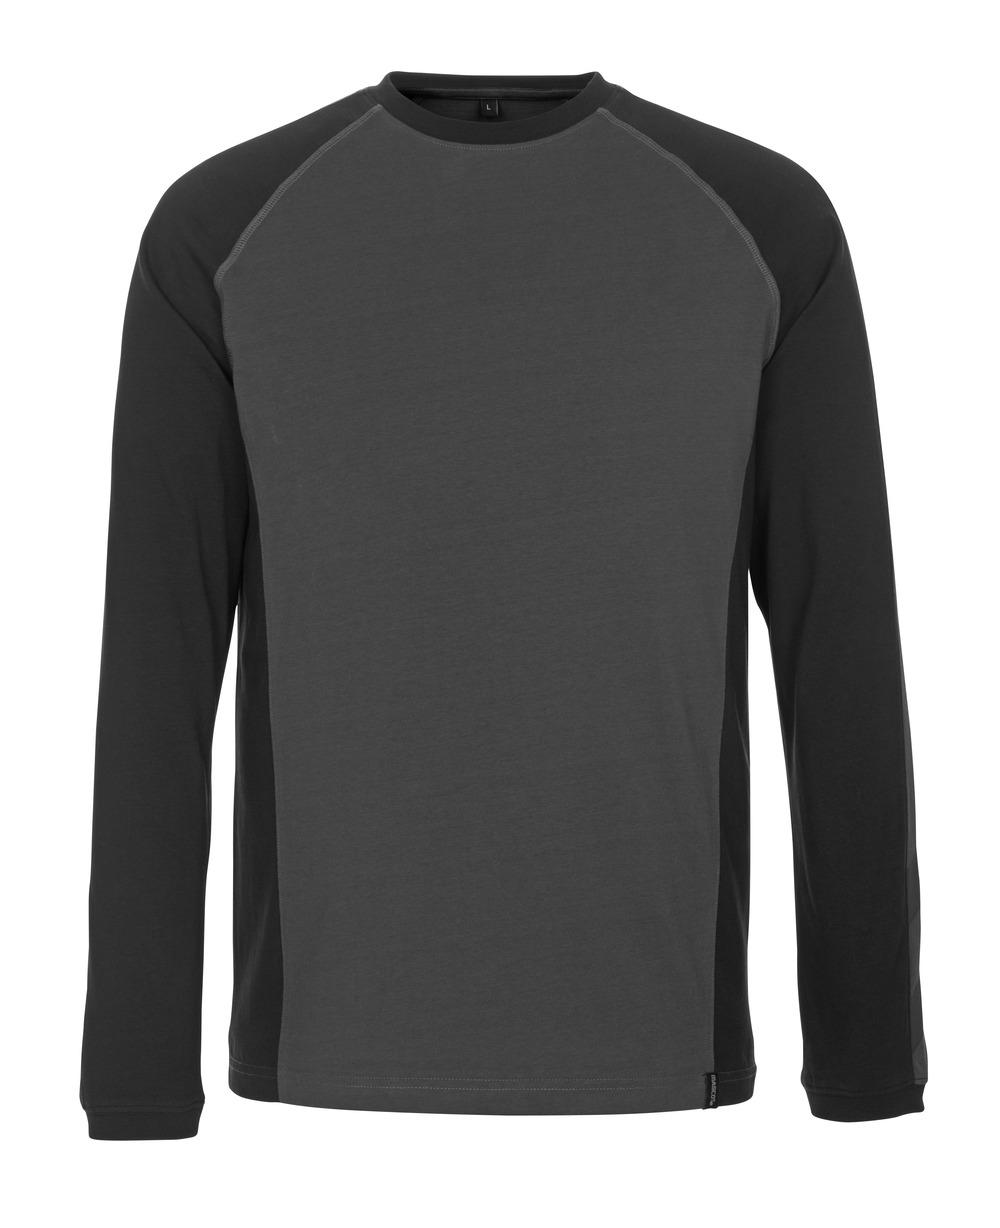 50568-959-1809 T-shirt, long-sleeved - dark anthracite/black